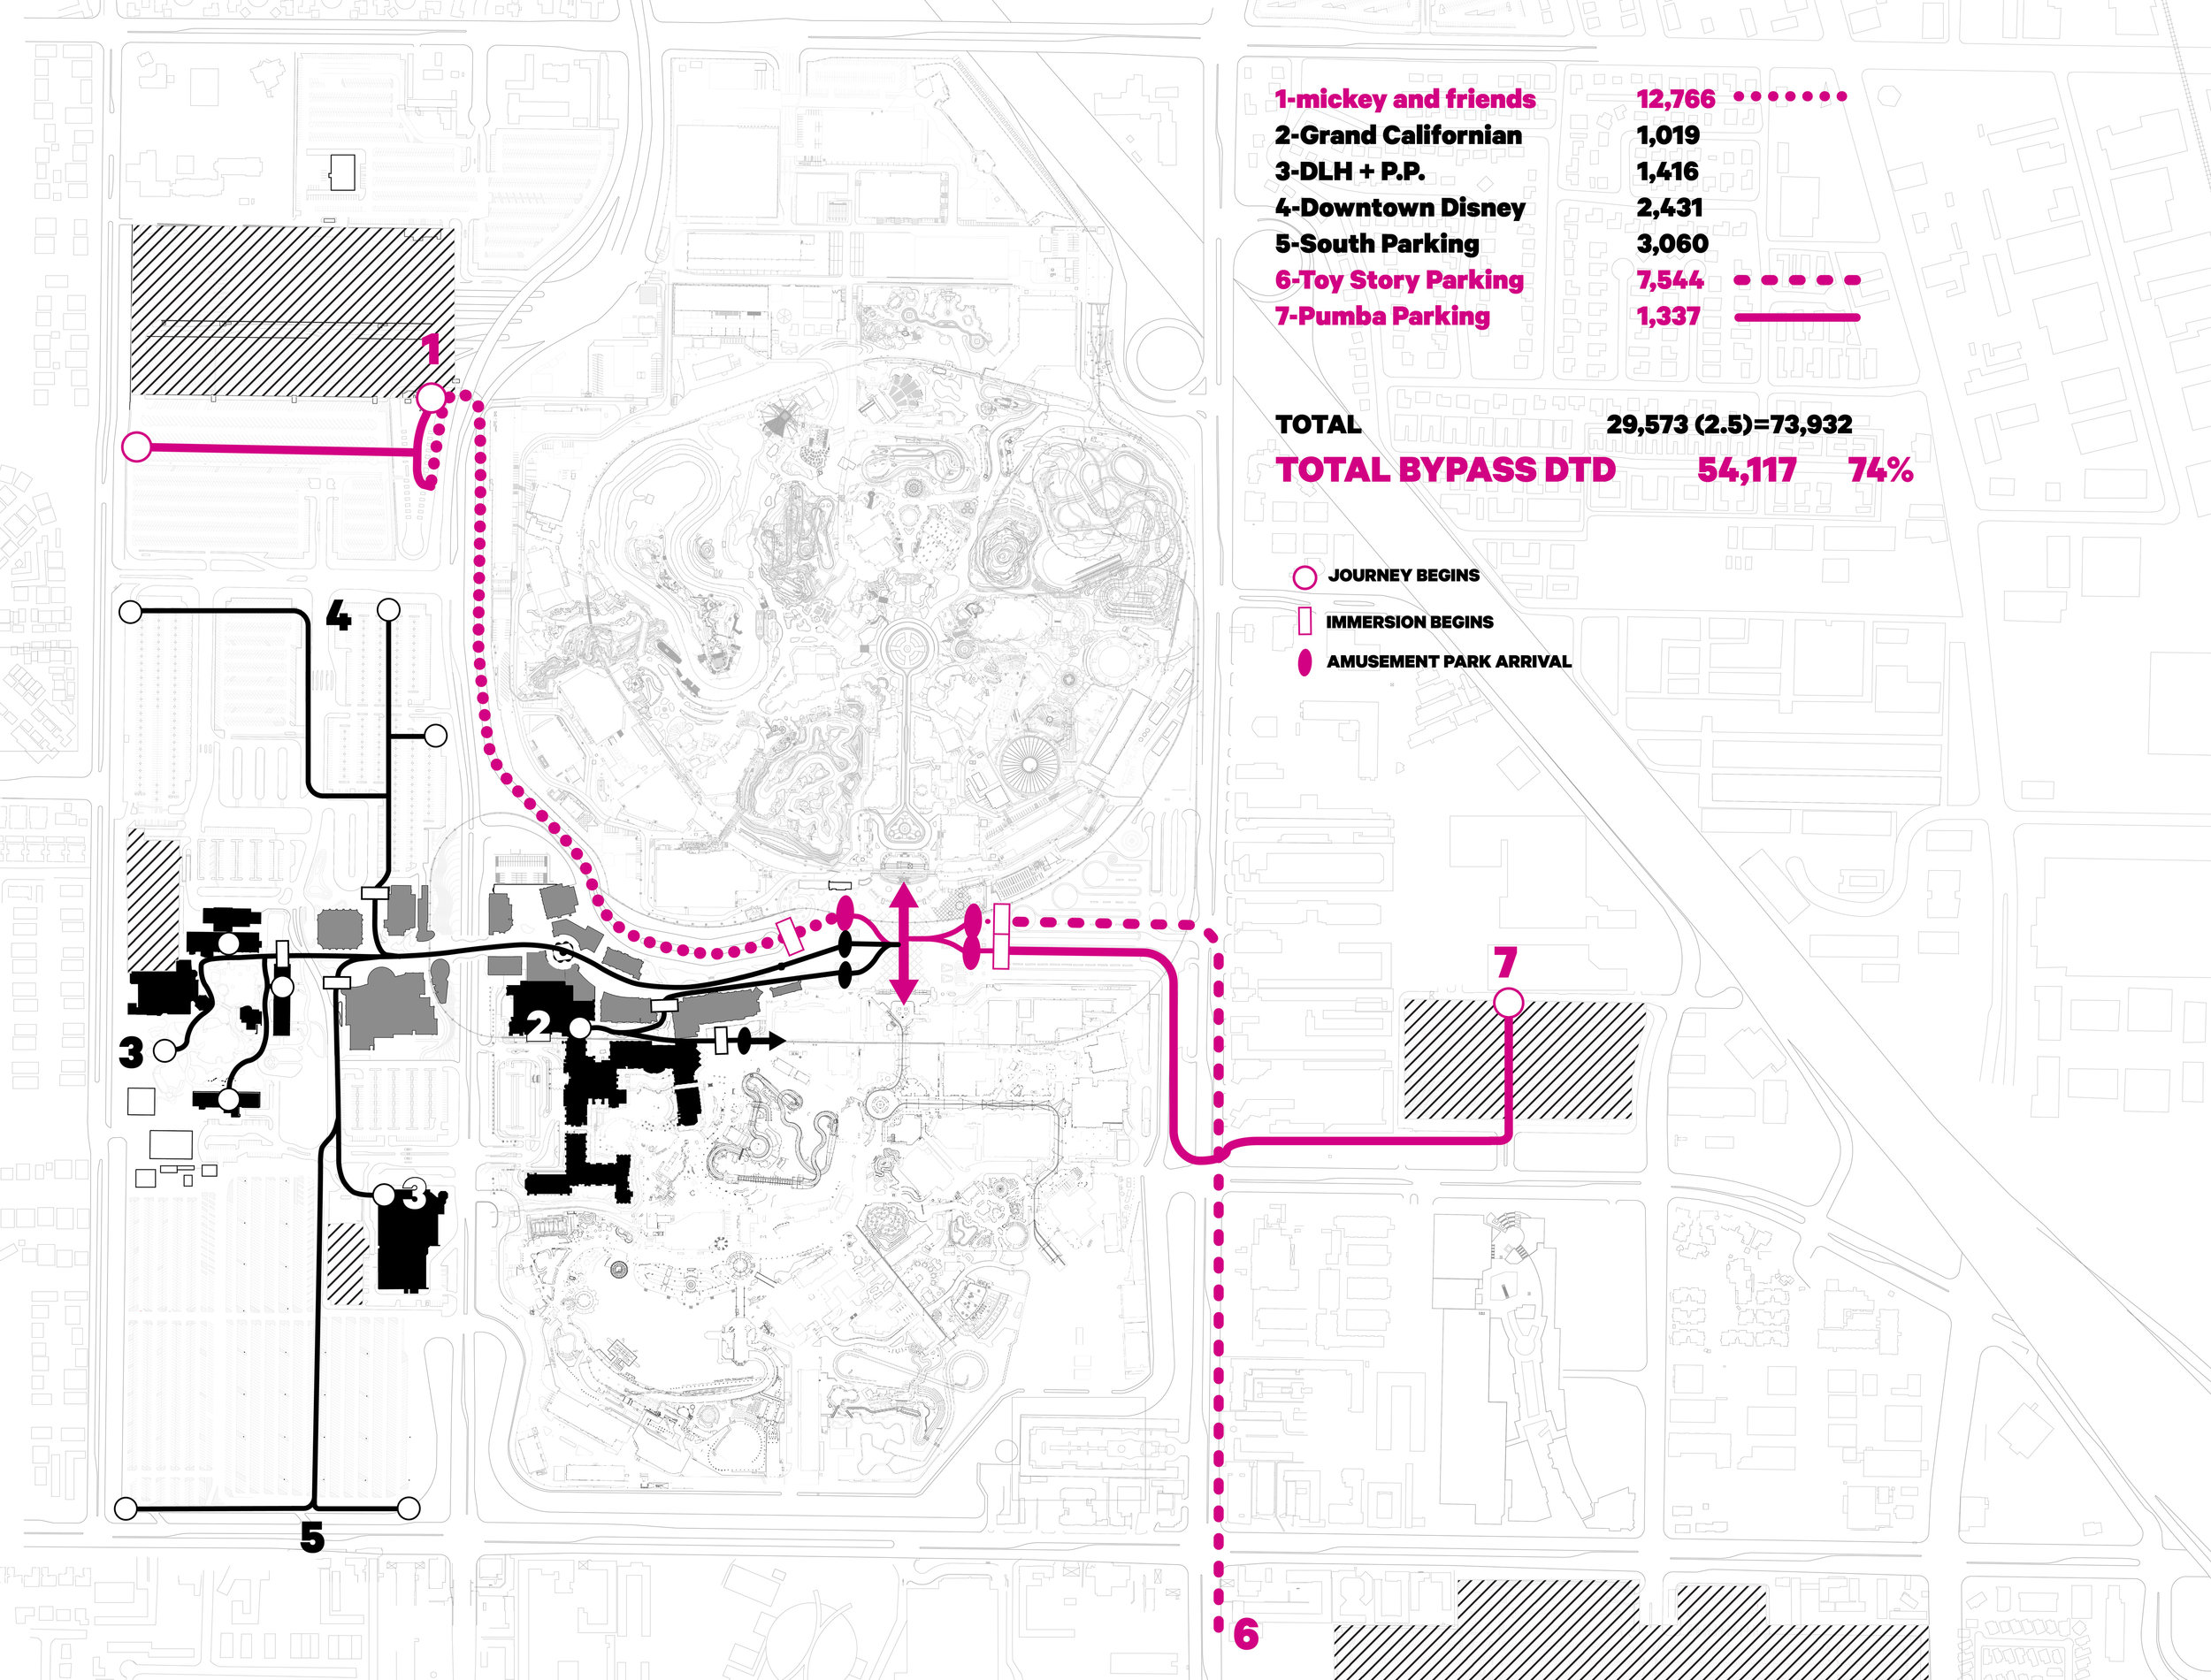 """Pedestrian paths from hotels and parking bypassed a great deal of the """"Disney Experience"""""""